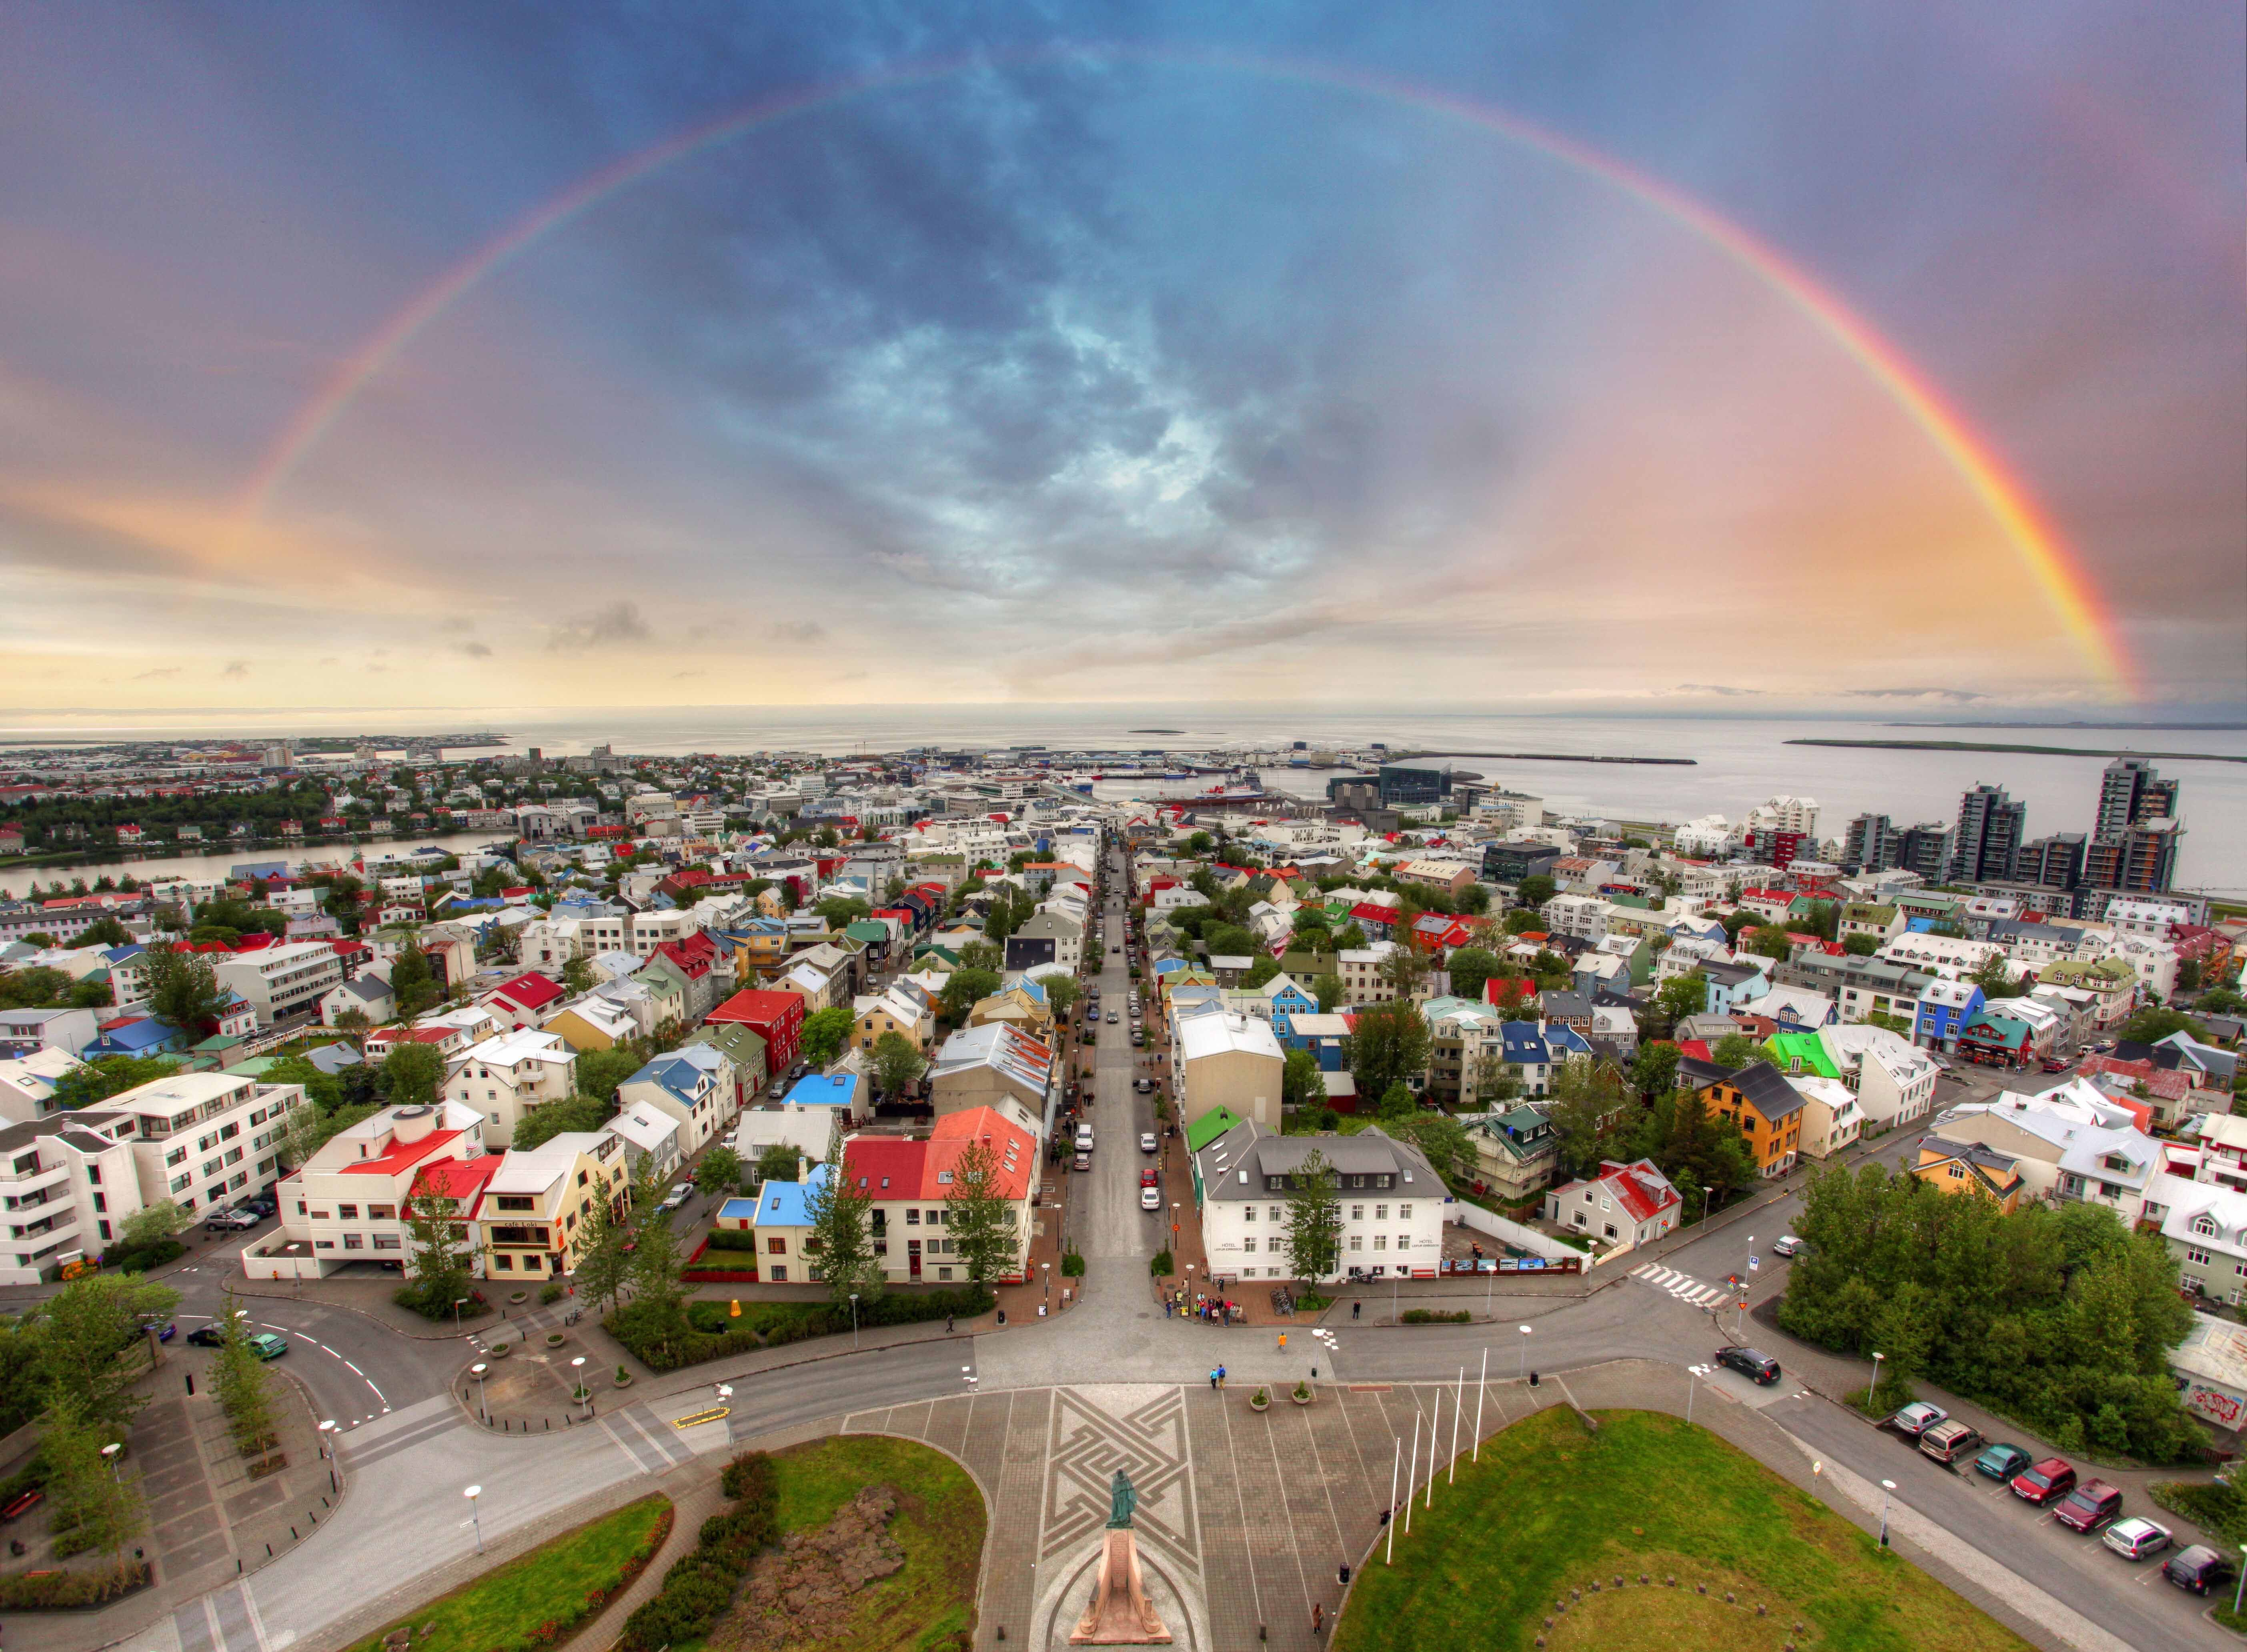 The church is open to visitors all year round, and from its tower one can  enjoy an impressive view of the entire Greater Reykjavík Area.